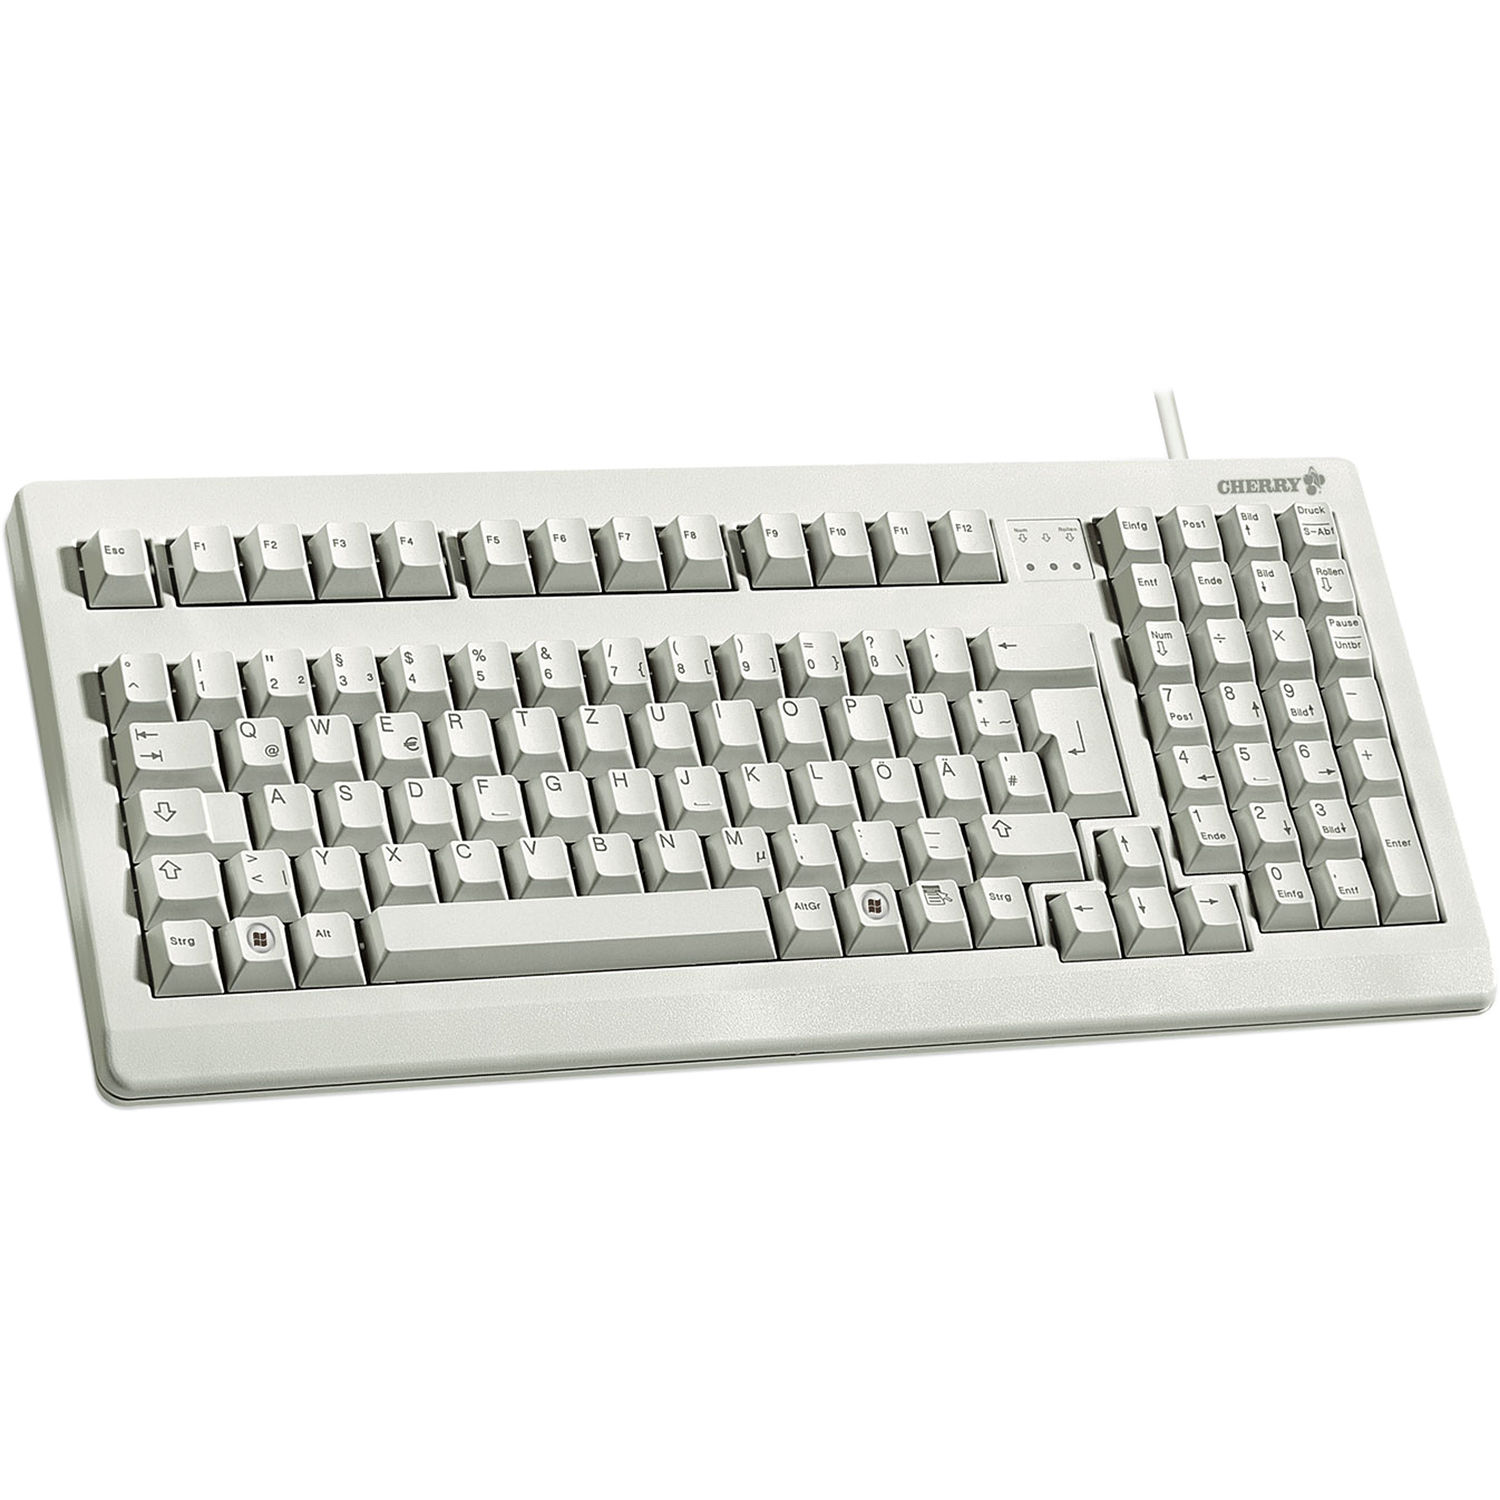 Cherry 16″ USB and PS/2 keyboard, Light Grey